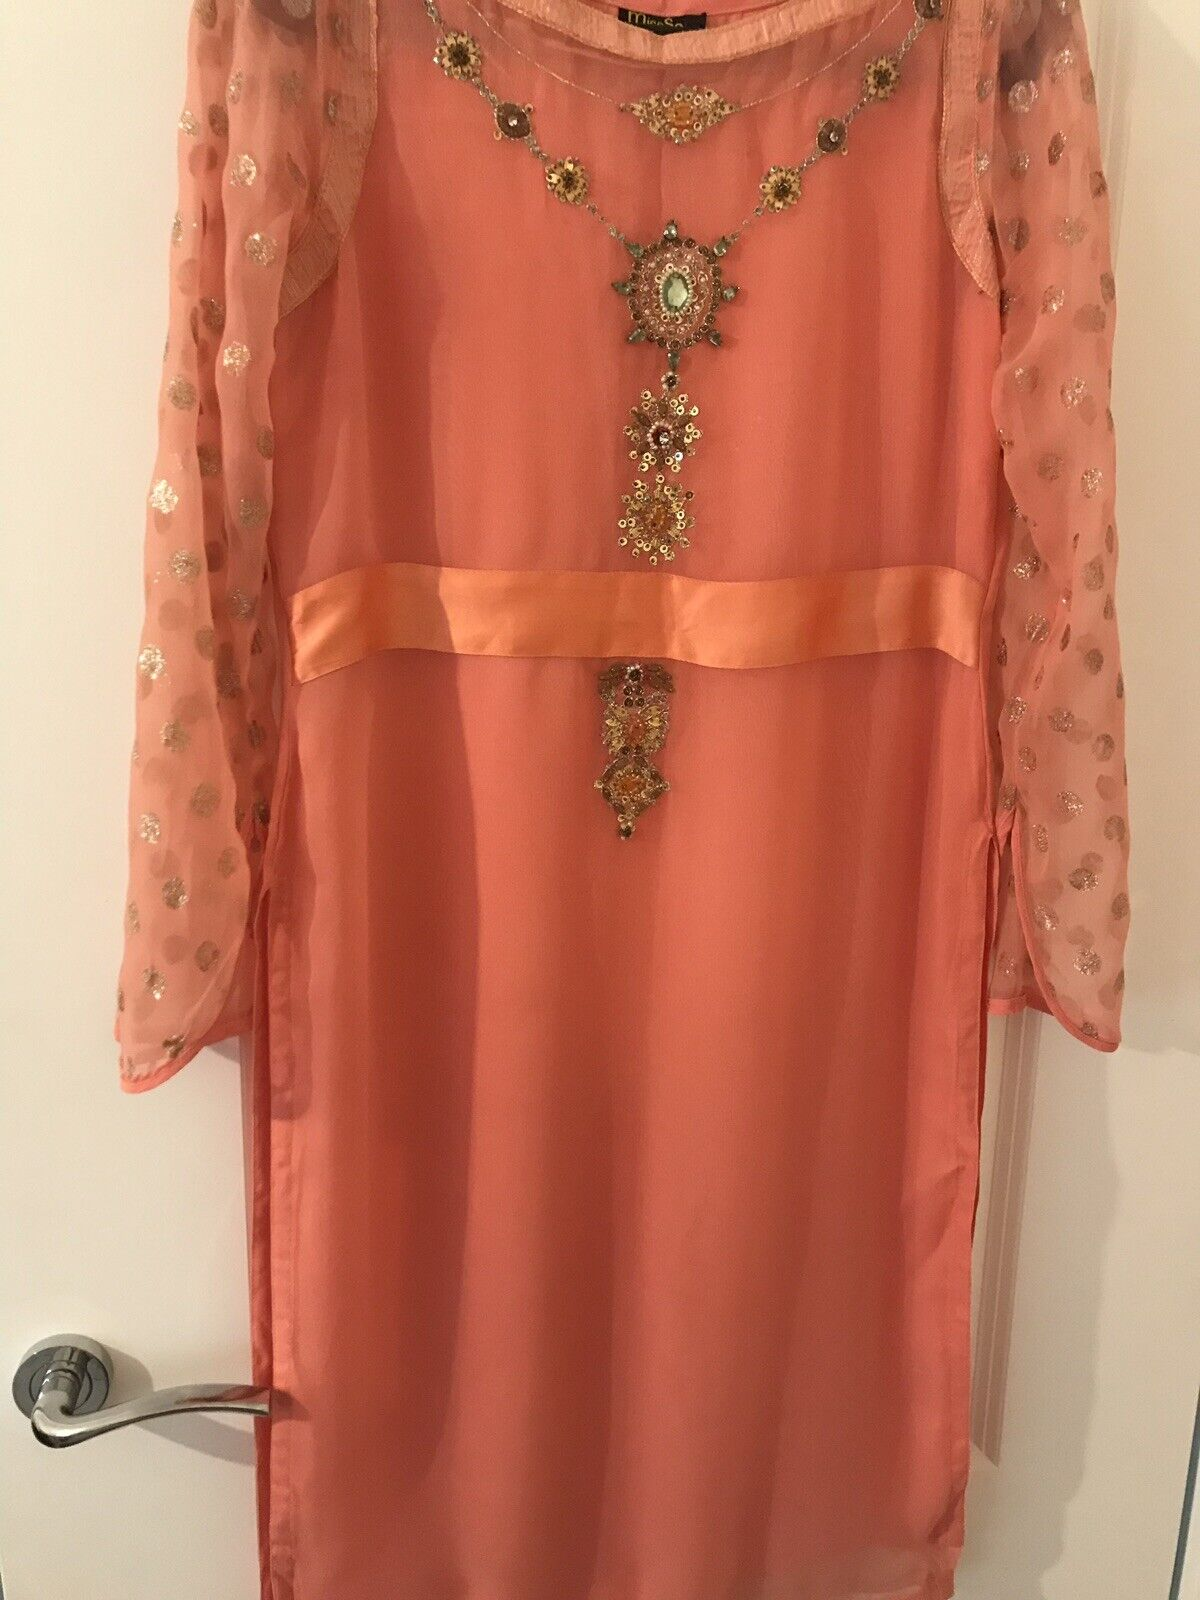 Asian Ready To Wear Size Small Party Dress